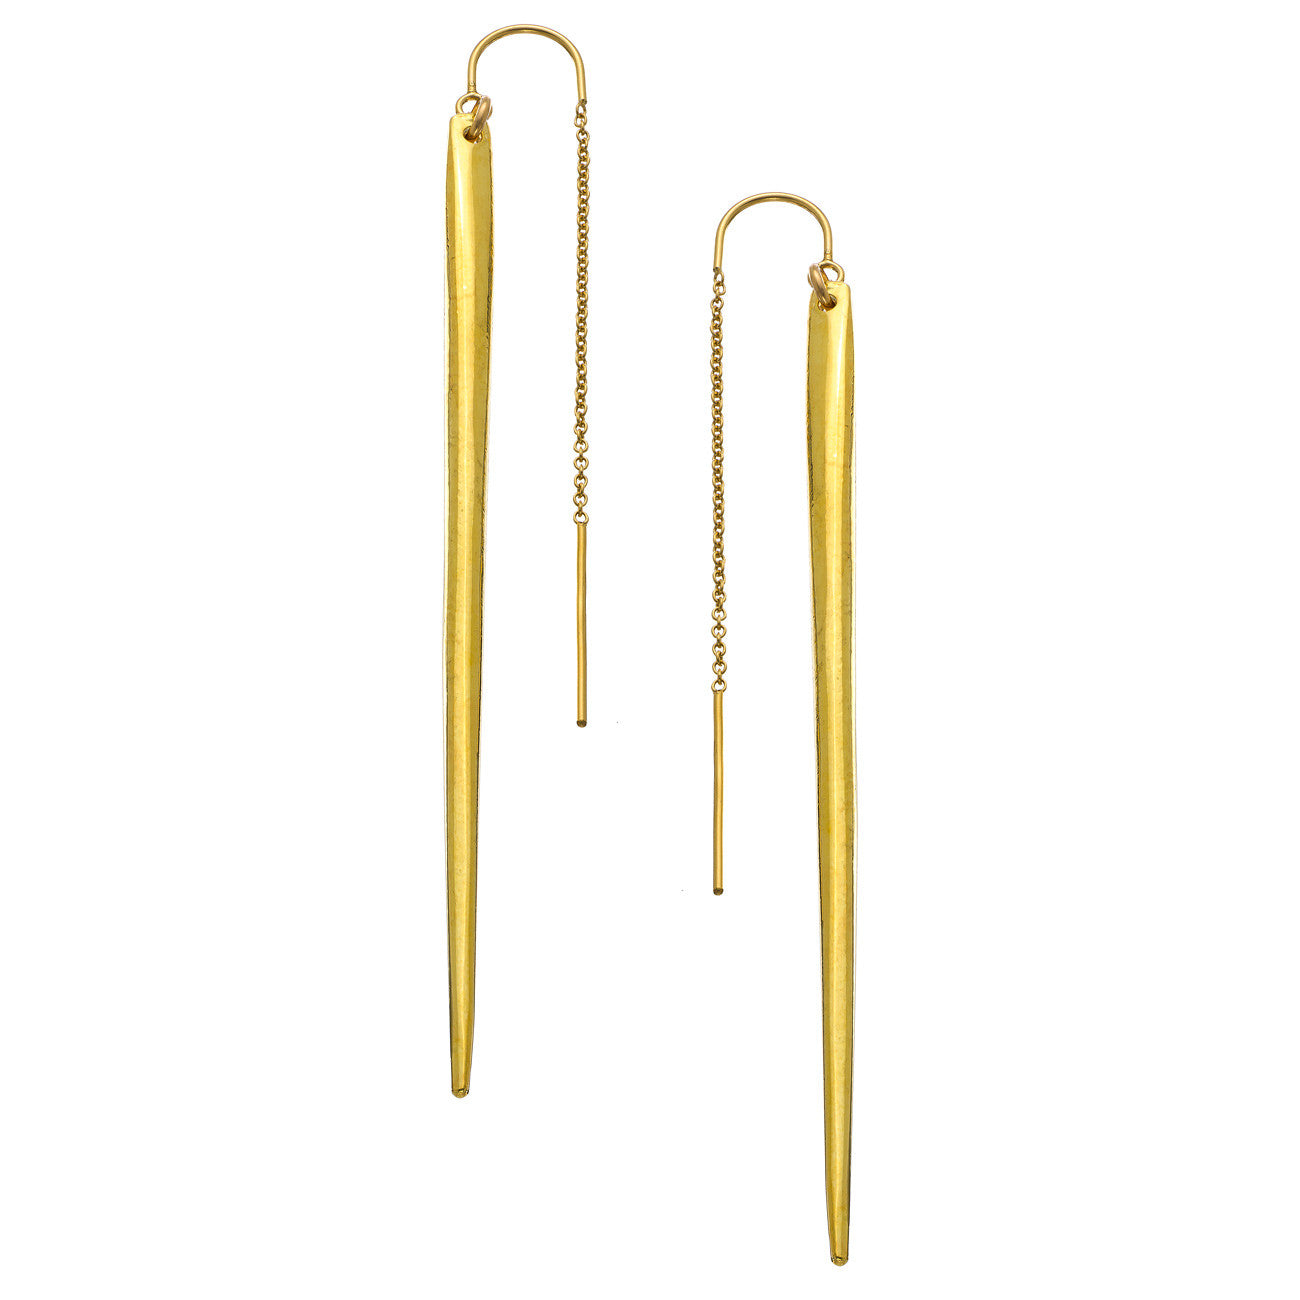 6efb035e4 Gold Dagger Thread Thru Earrings - Heather Hawkins INC